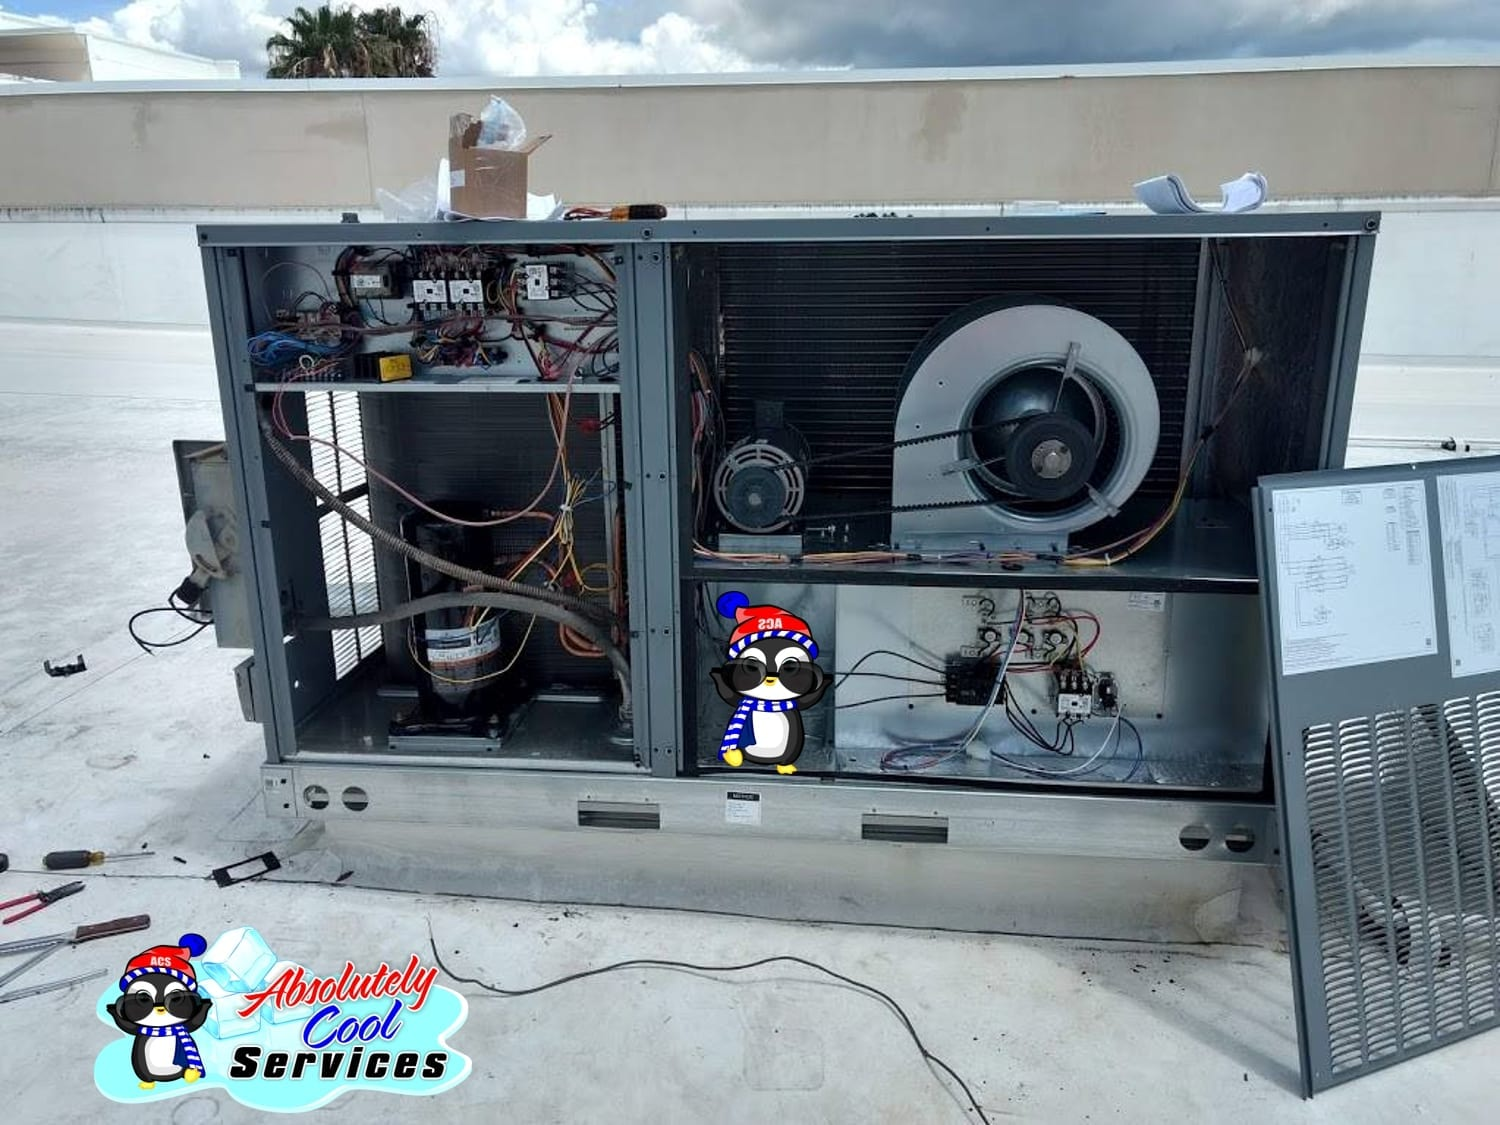 Roof Air Conditioning | Emergency Air Conditioning Repair Company near Lake Worth